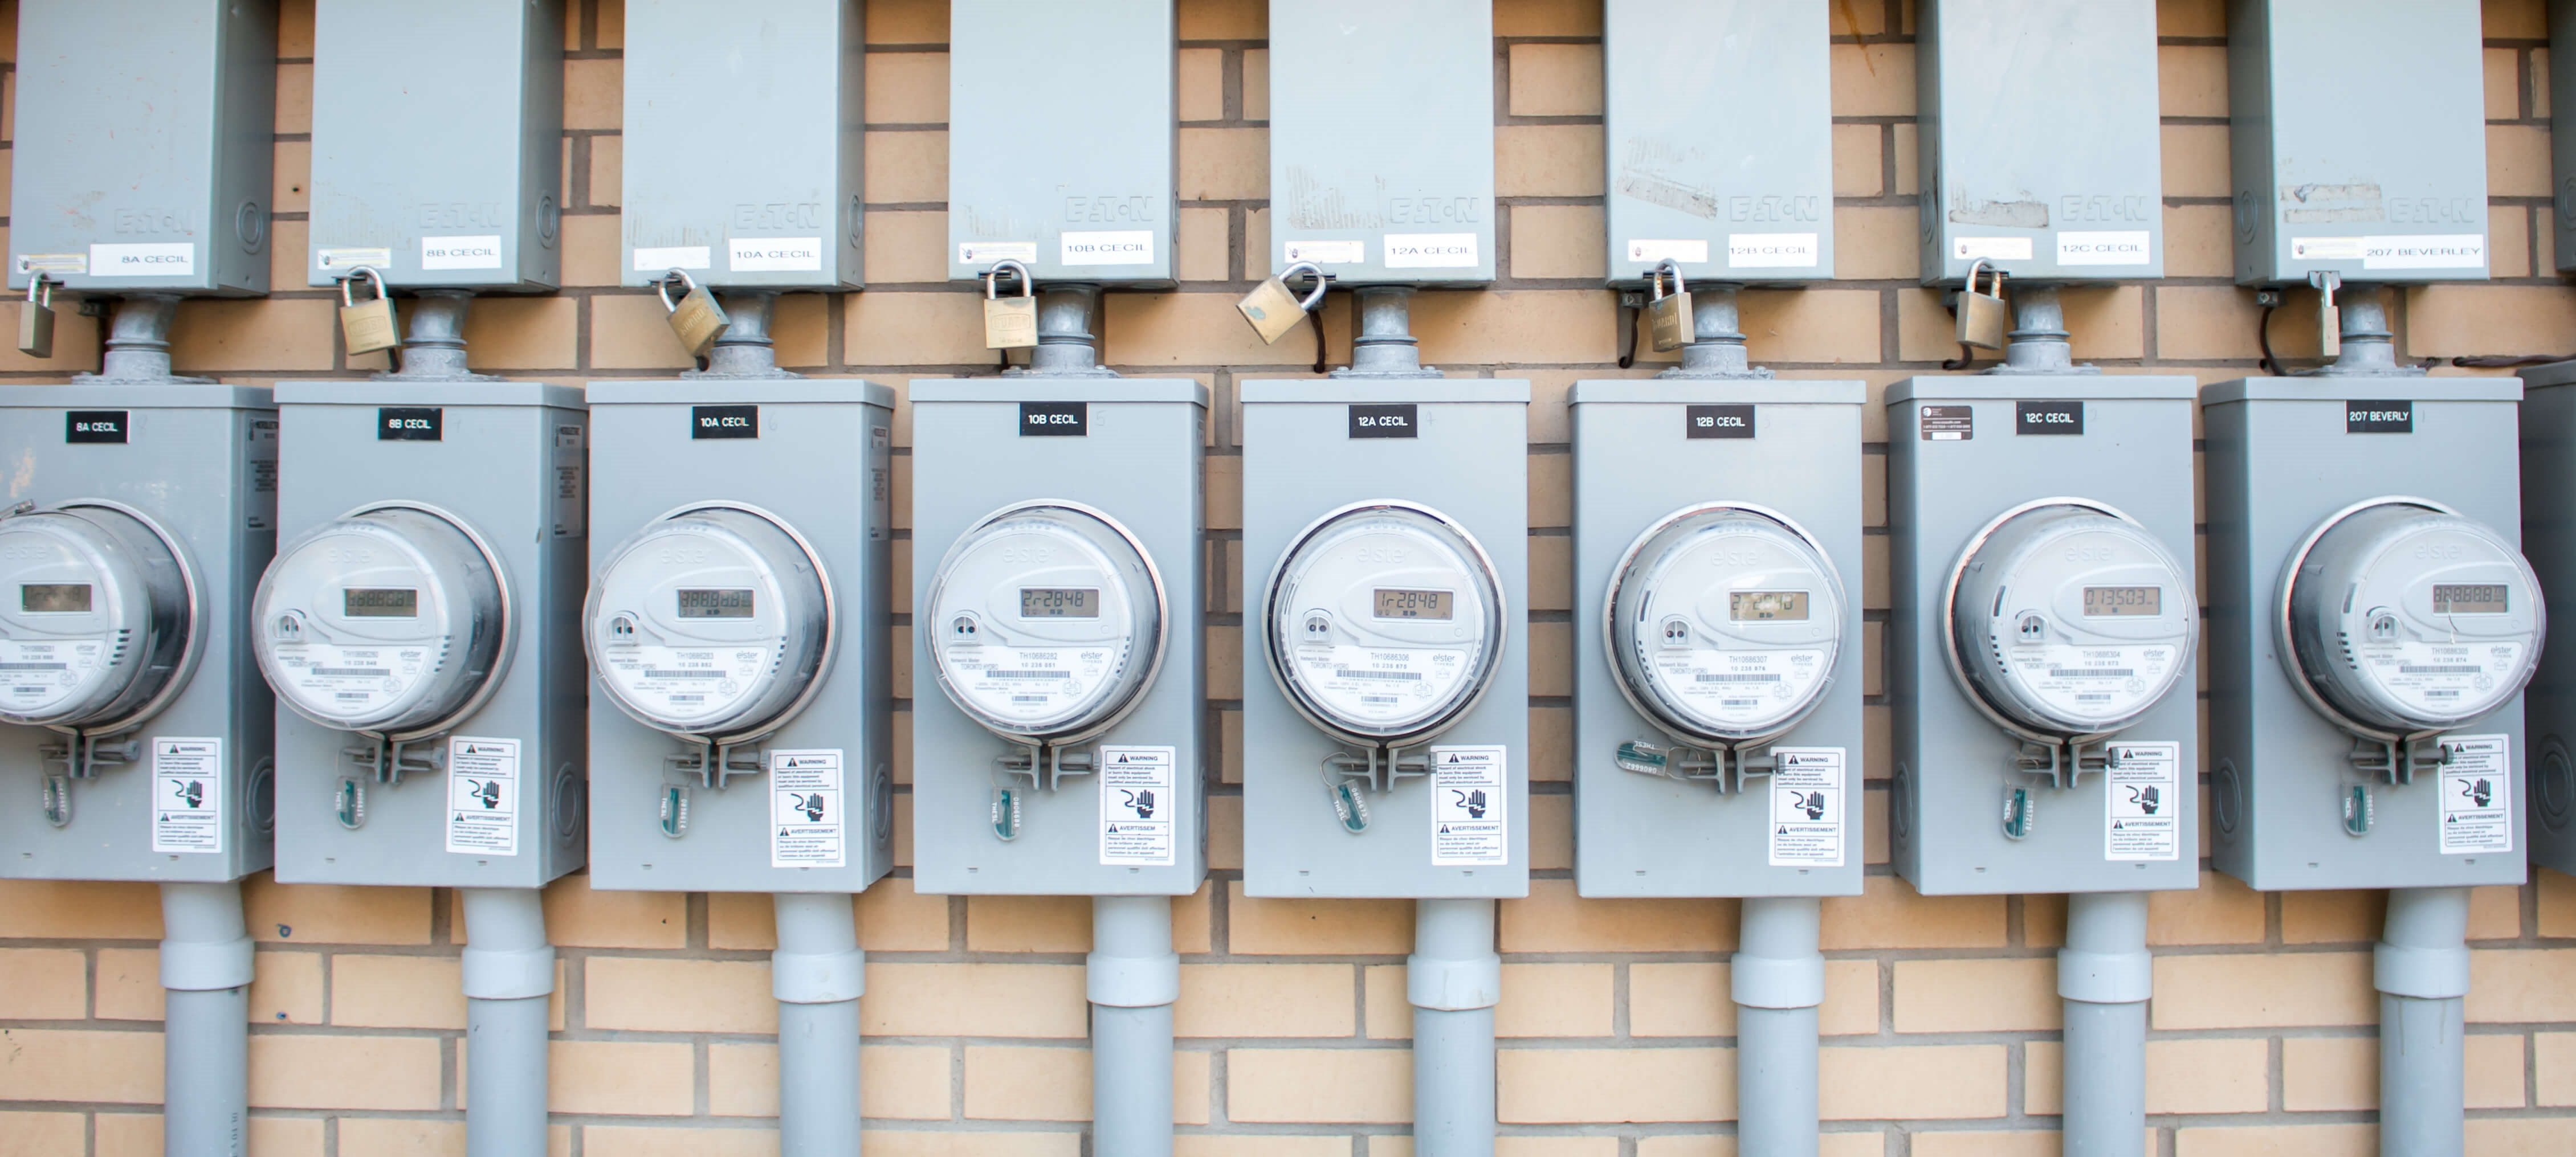 5 Energy Billing Errors That Can Be Silent Killers